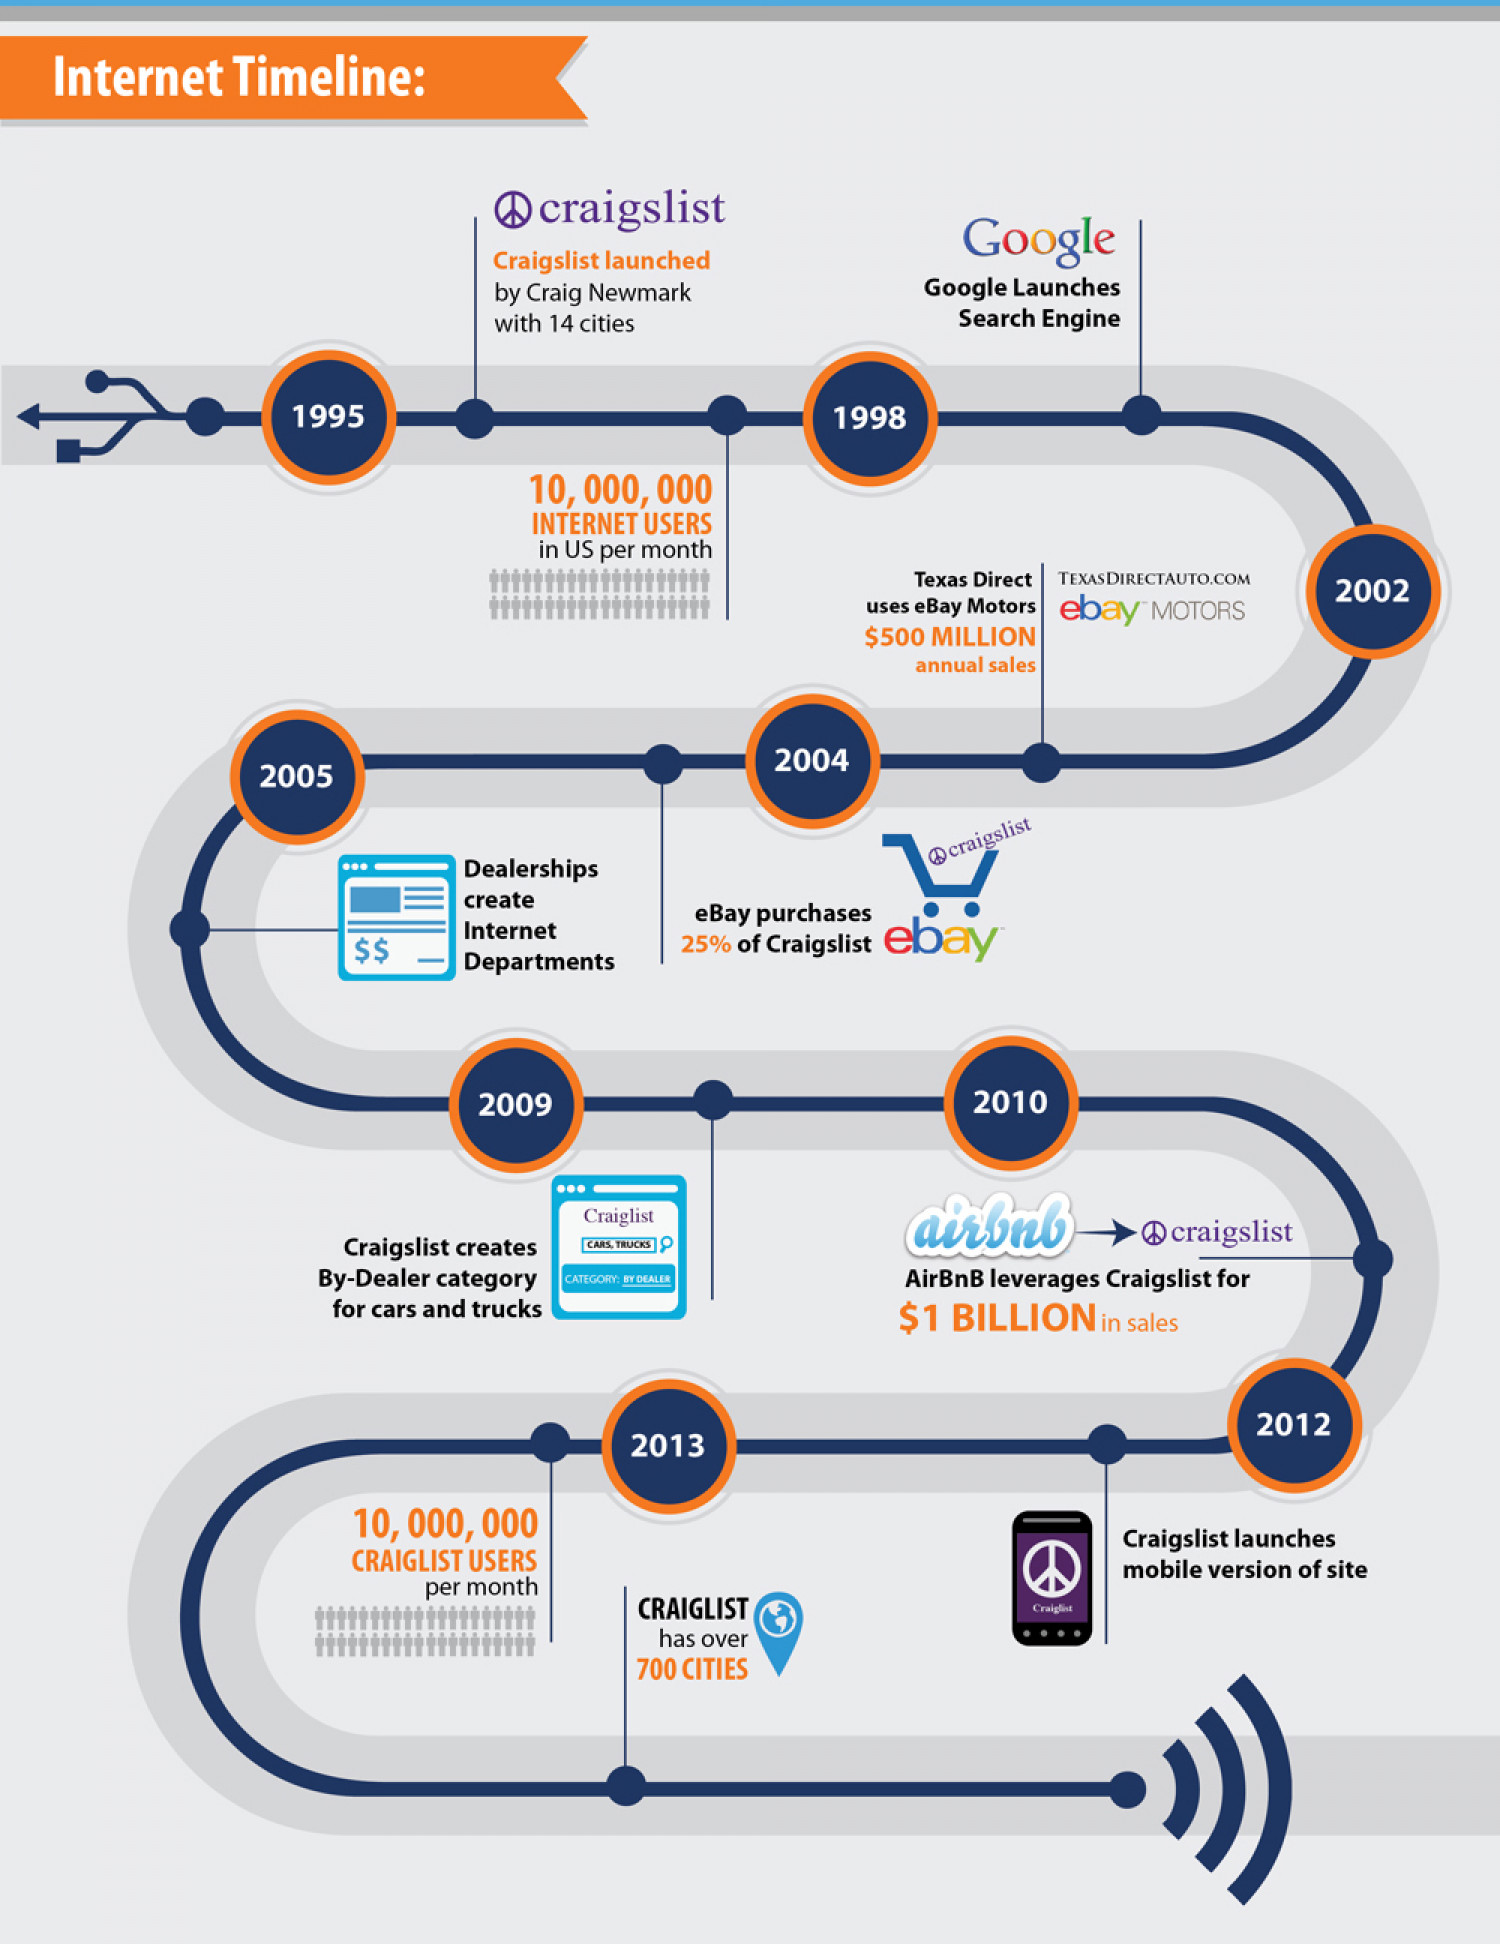 Internet and Craiglist history Infographic